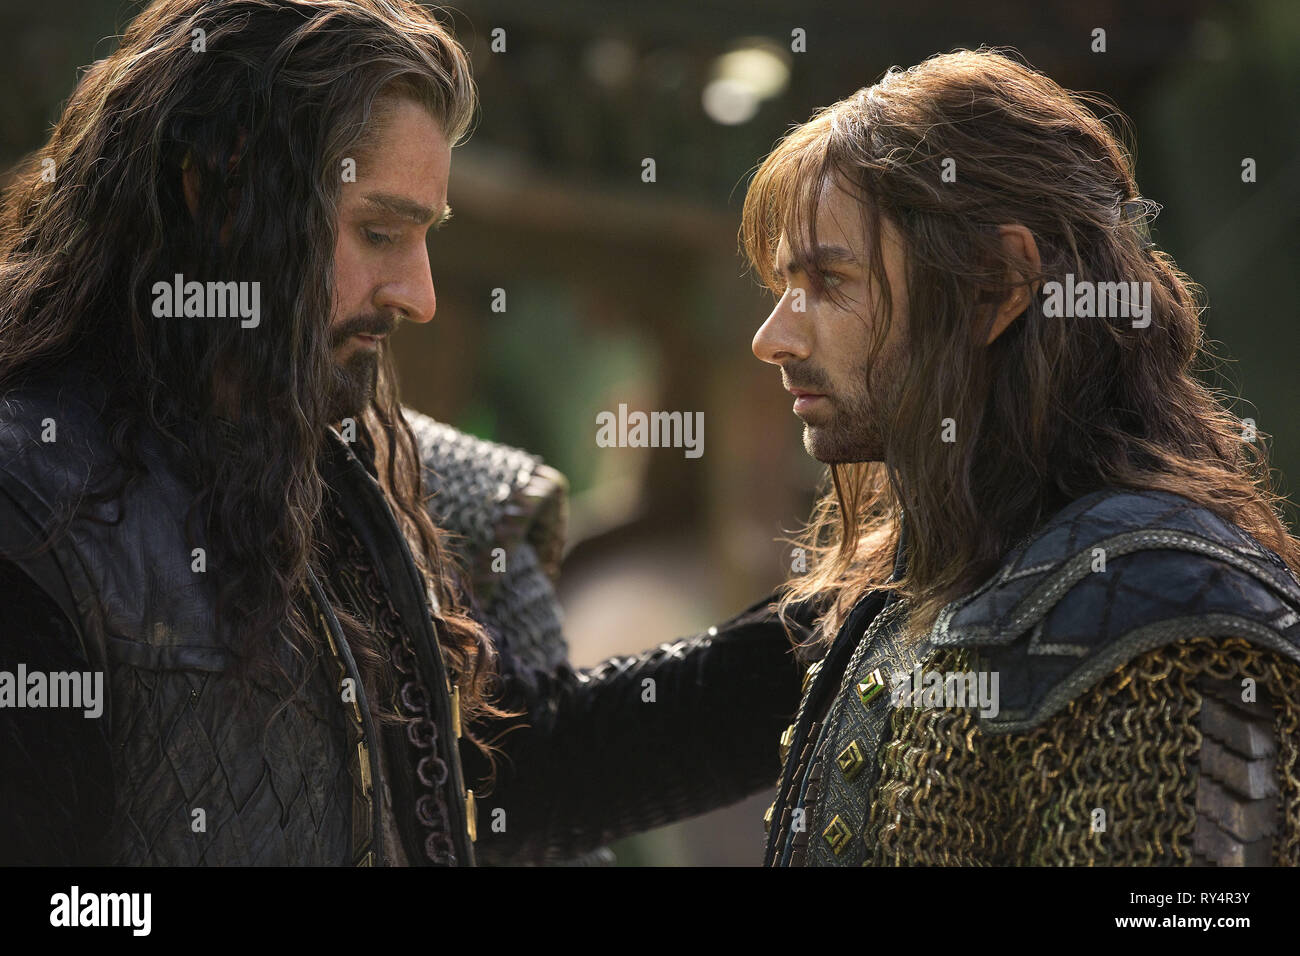 ARMITAGE,TURNER, THE HOBBIT: THE BATTLE OF THE FIVE ARMIES, 2014 - Stock Image